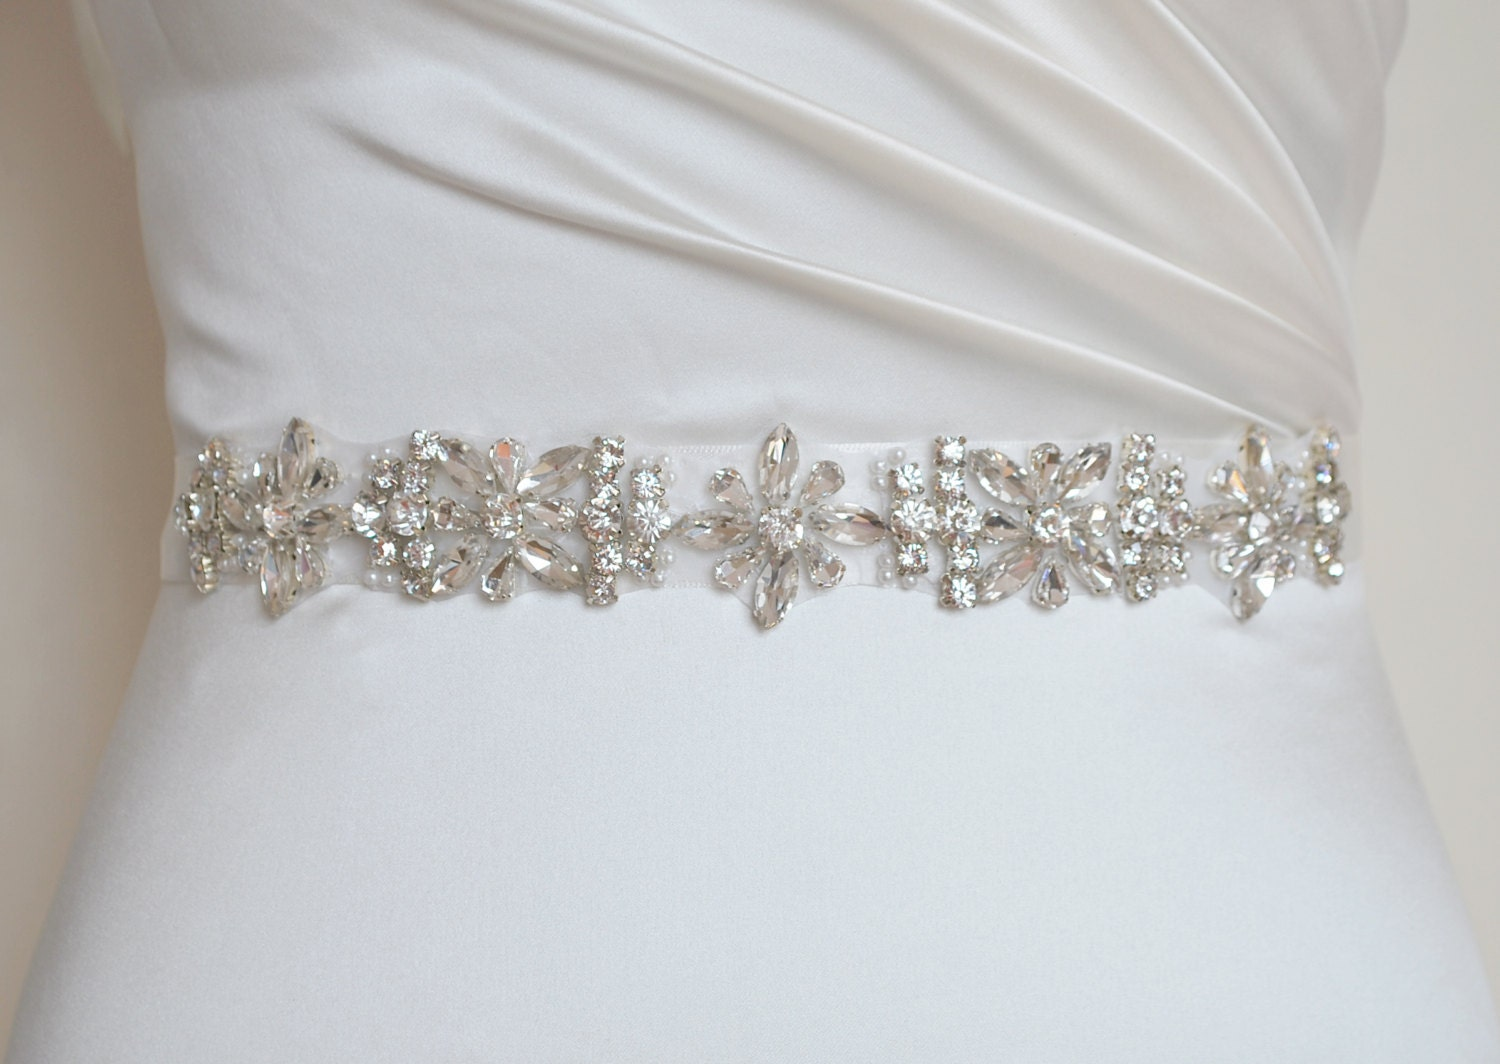 Wedding sash bridal belt rhinestone sash crystal sash for Wedding dress sash with rhinestones